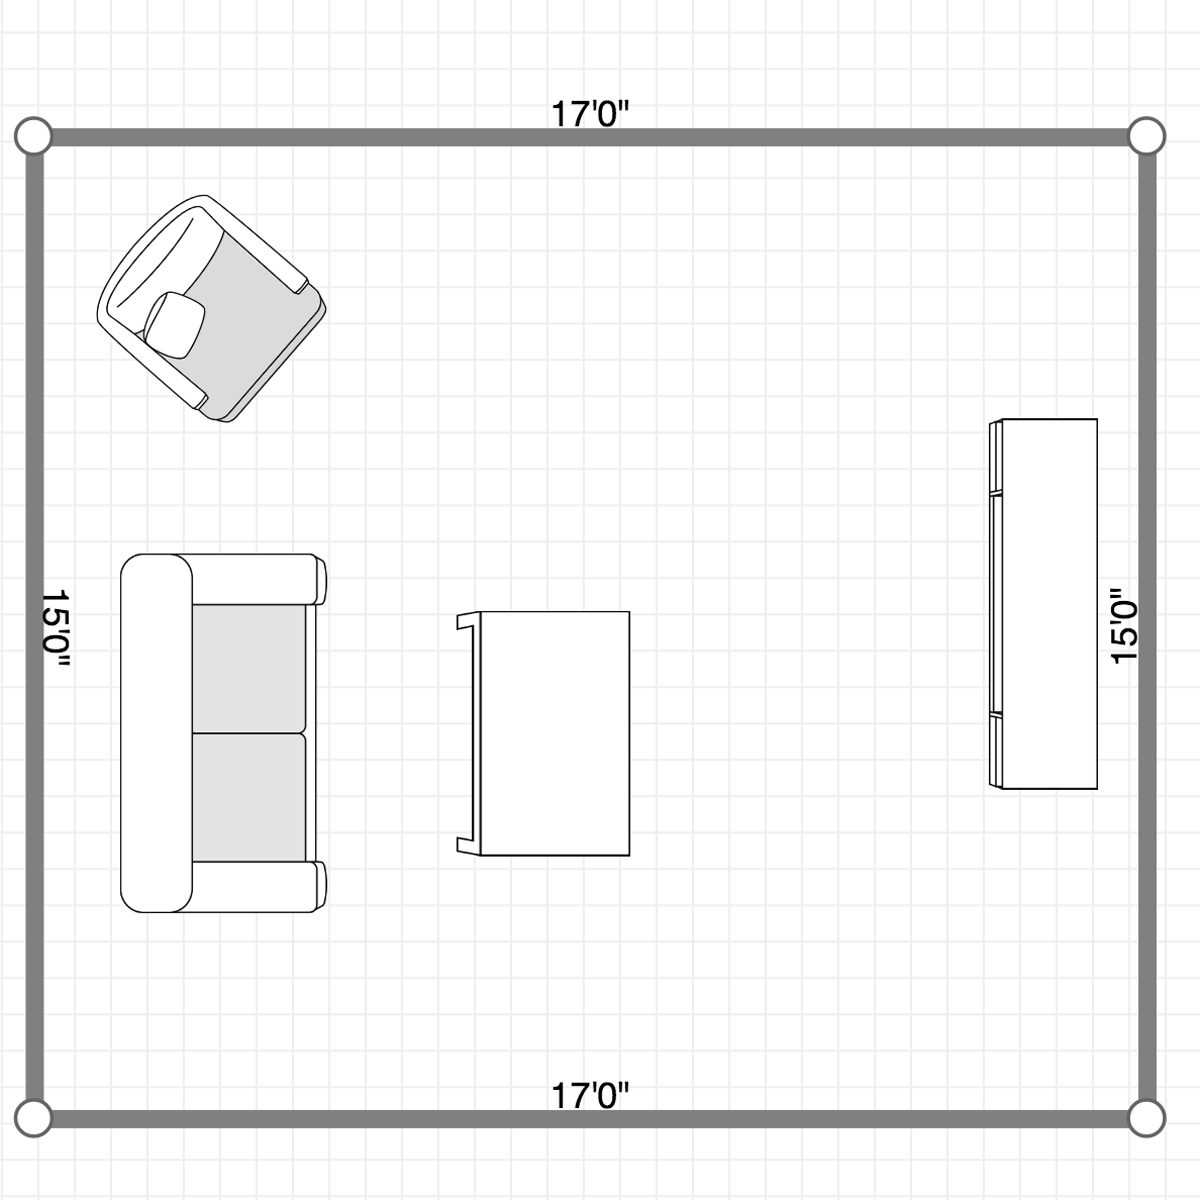 How to Downsize: Measure Furniture to see if it'll fit in new Place